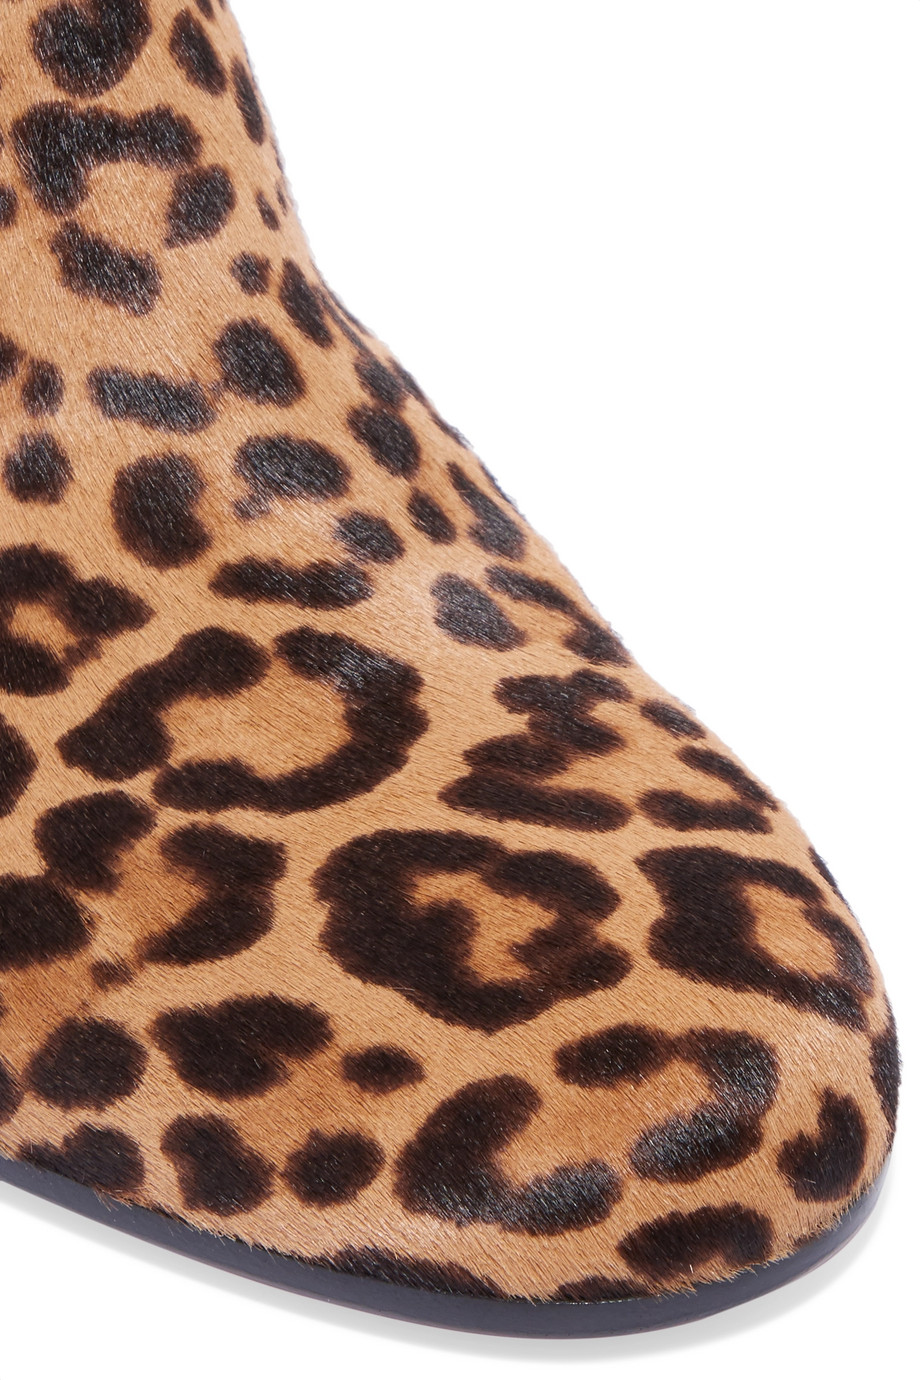 0ad4aa0b5747 Gianvito Rossi Margaux 65 leopard-print calf hair ankle boots